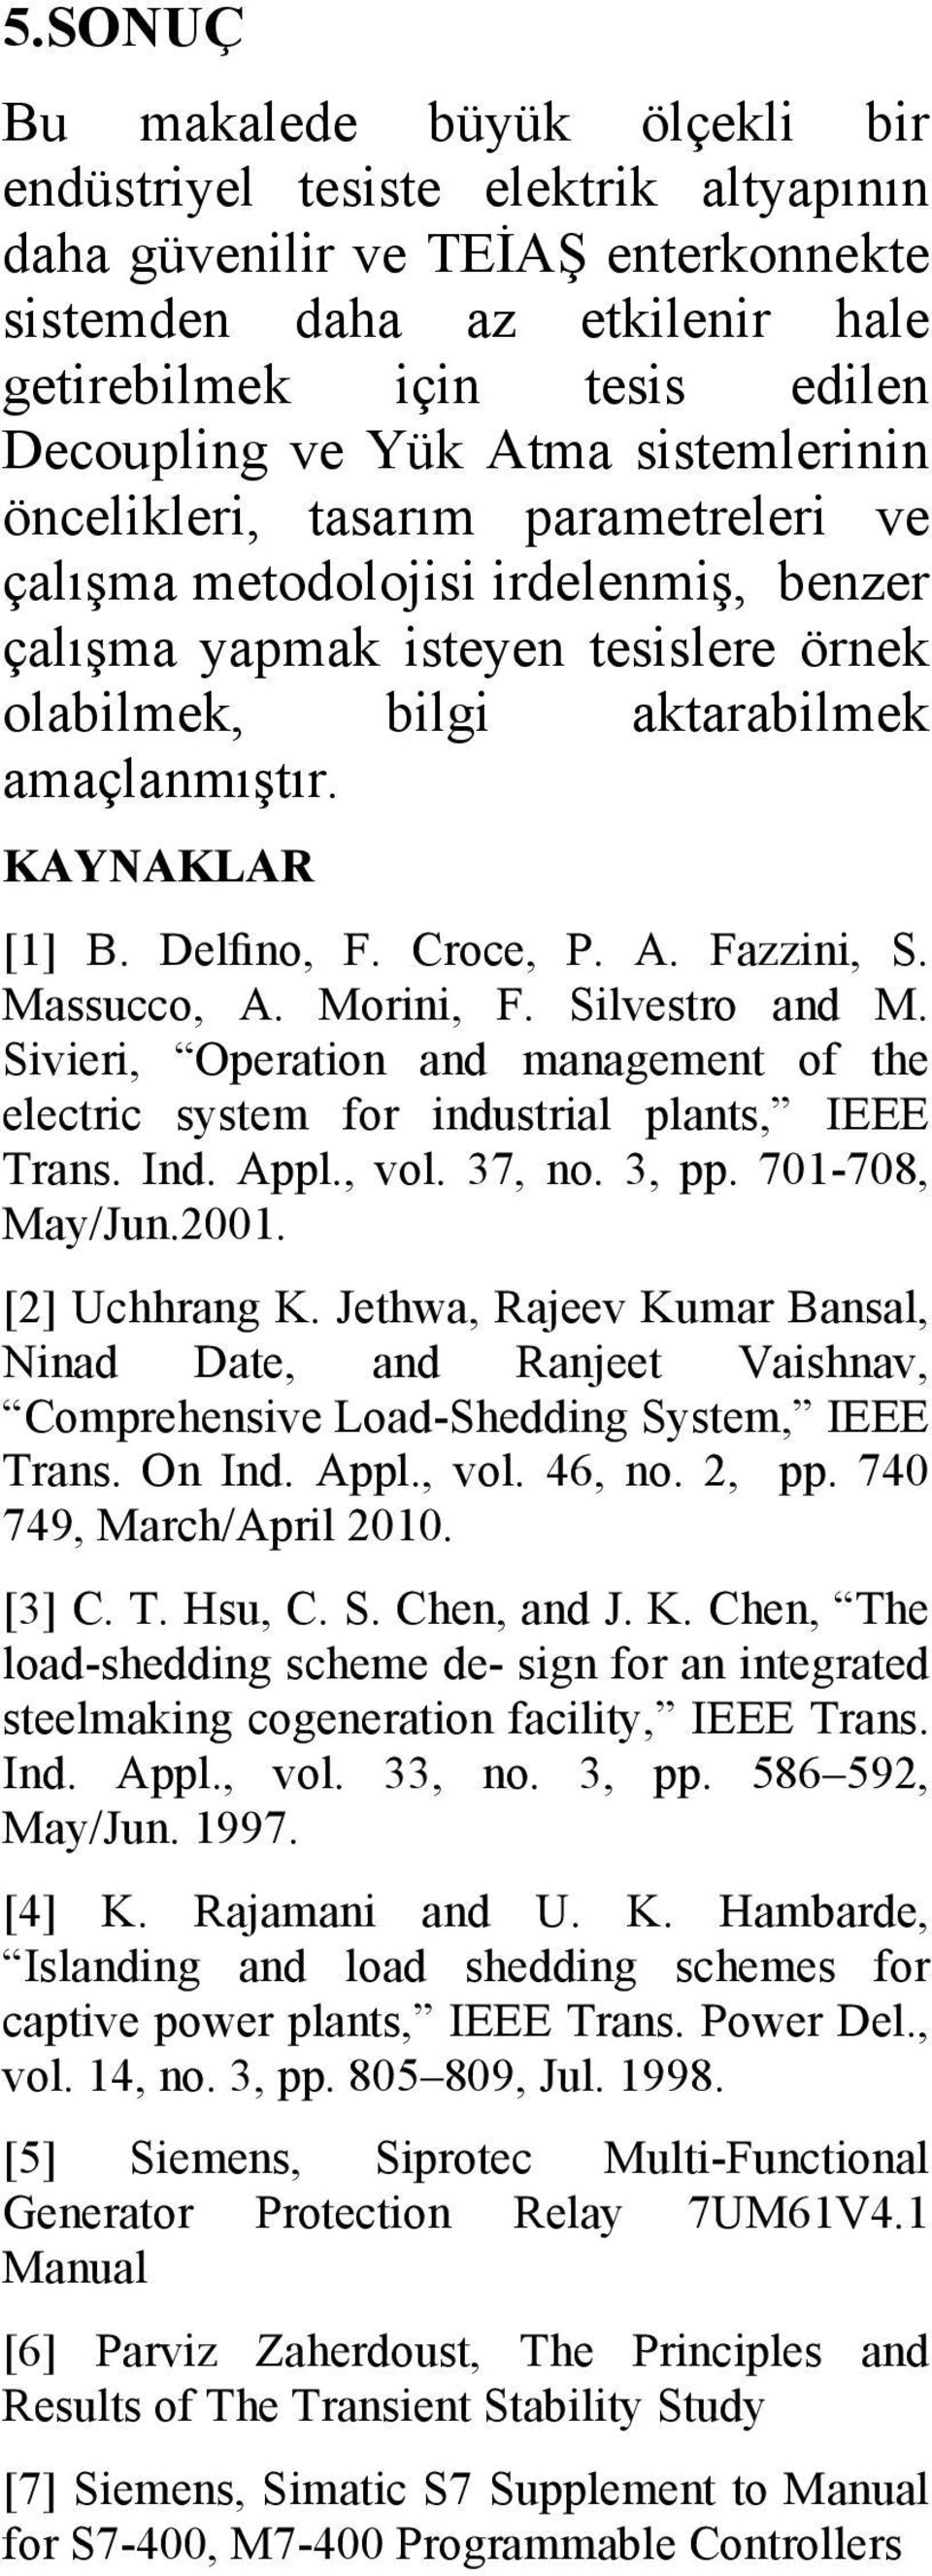 Delfino, F. Croce, P. A. Fazzini, S. Massucco, A. Morini, F. Silvestro and M. Sivieri, Operation and management of the electric system for industrial plants, IEEE Trans. Ind. Appl., vol. 37, no.